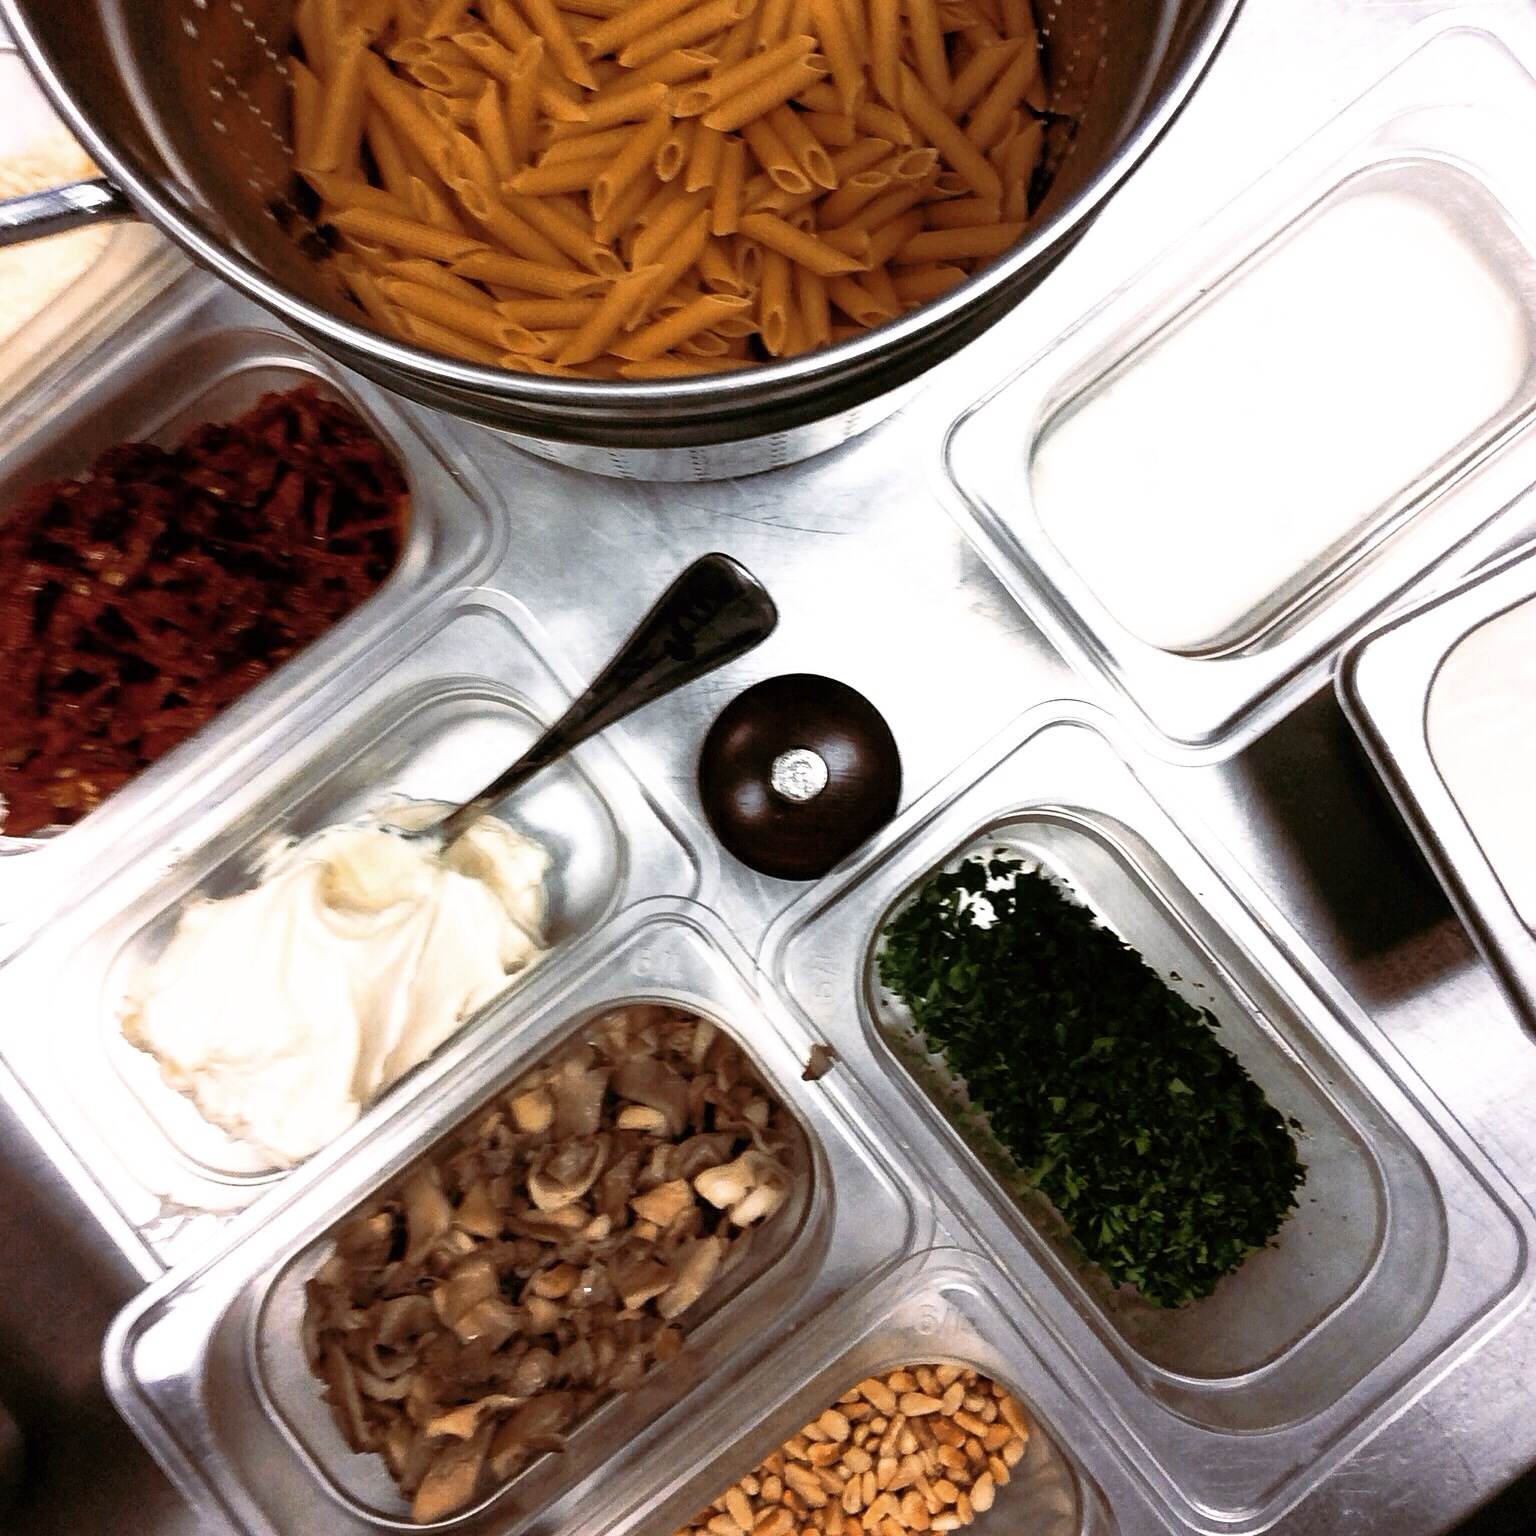 culinary school mise en place